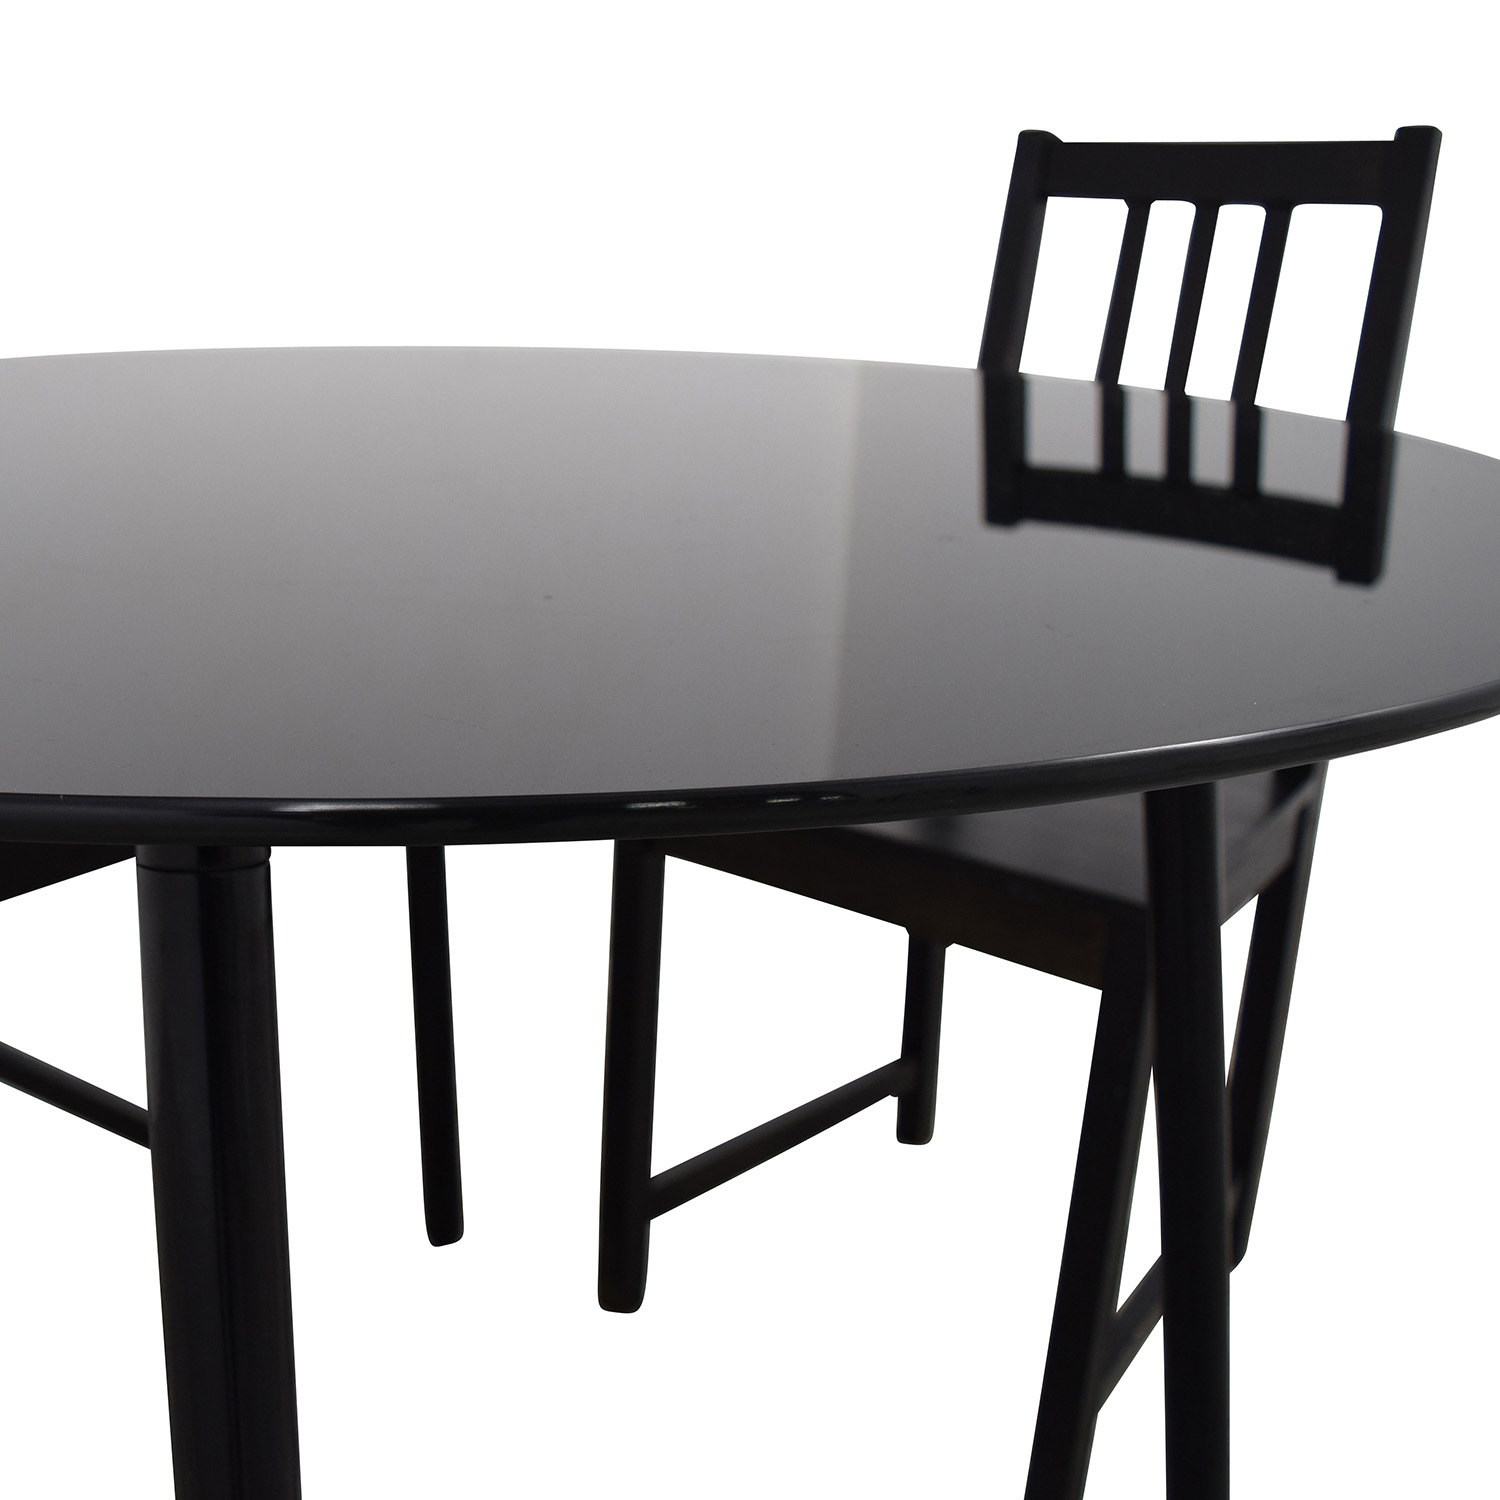 Ikea Table Chairs 31% Off - Ikea Ikea Glass And Wood Table And Chairs / Tables